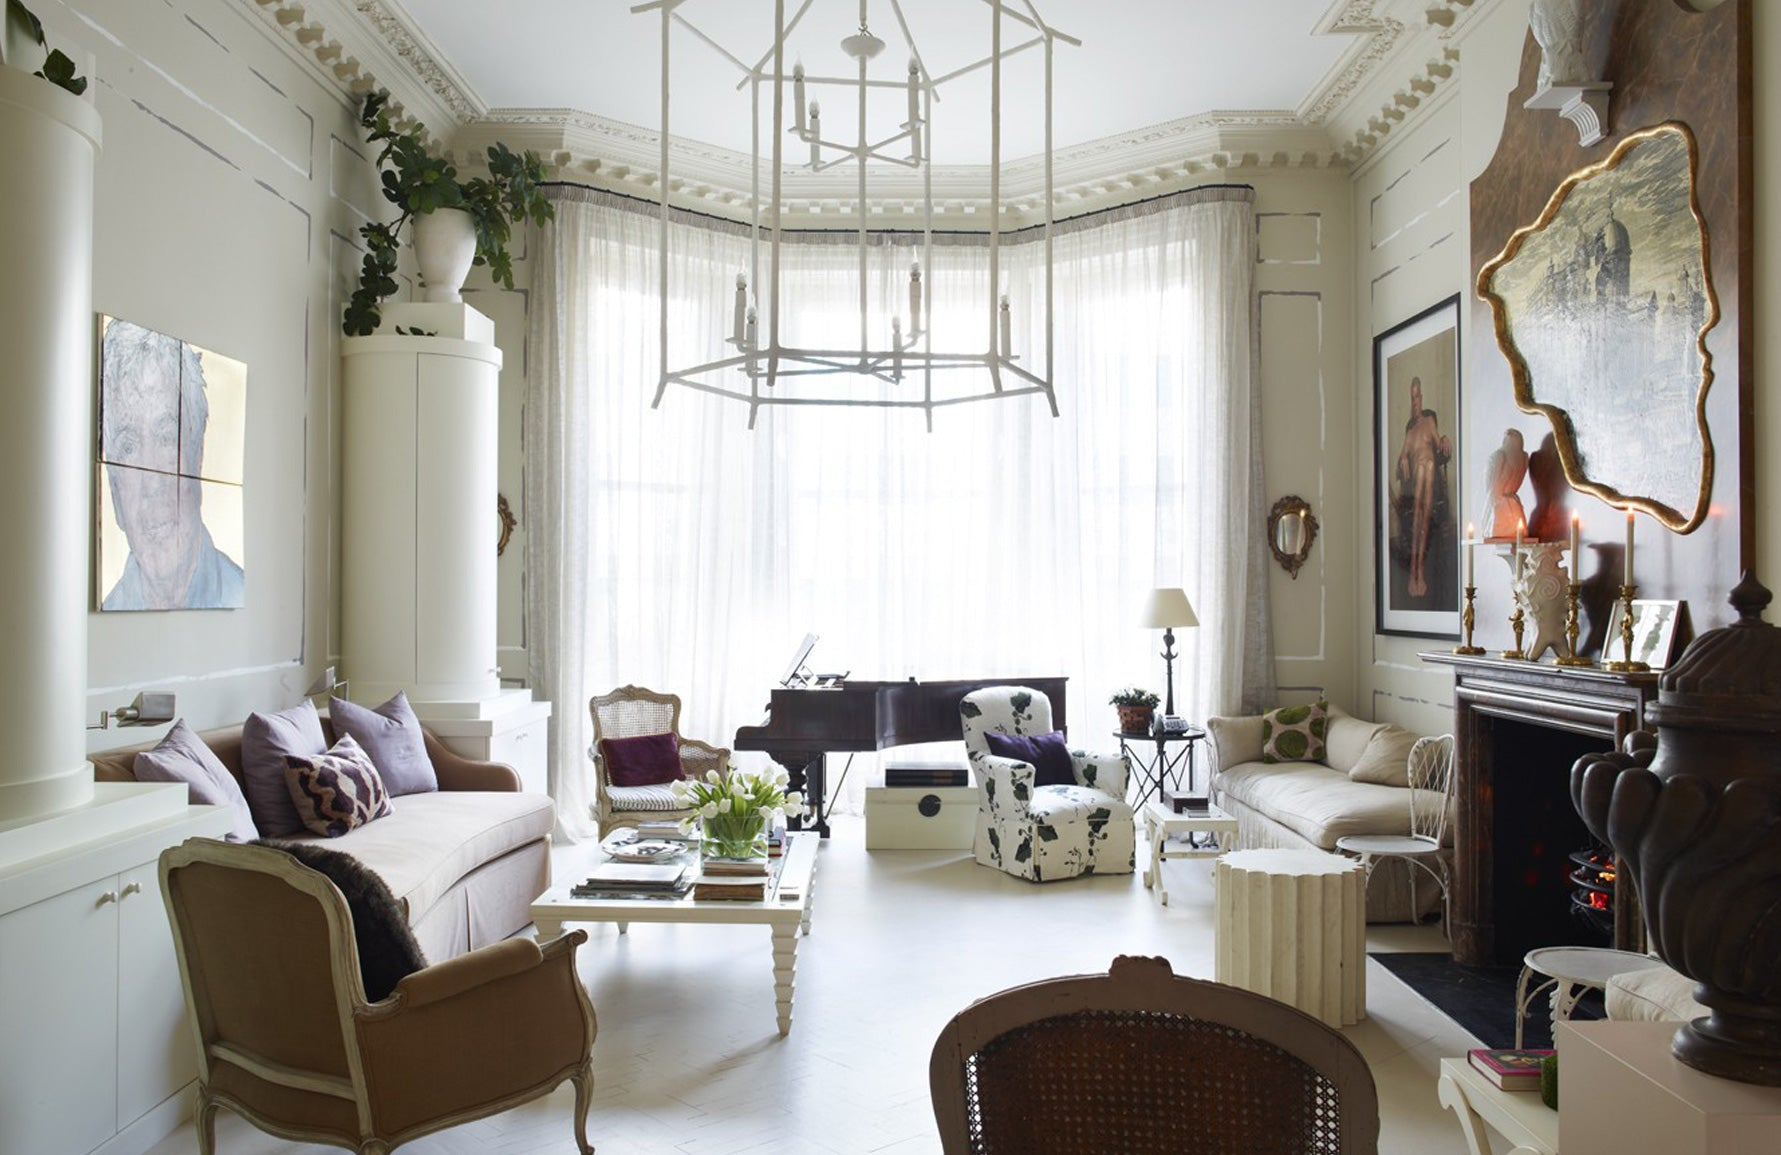 LuxDeco 100 | Nicky Haslam | The Luxurist